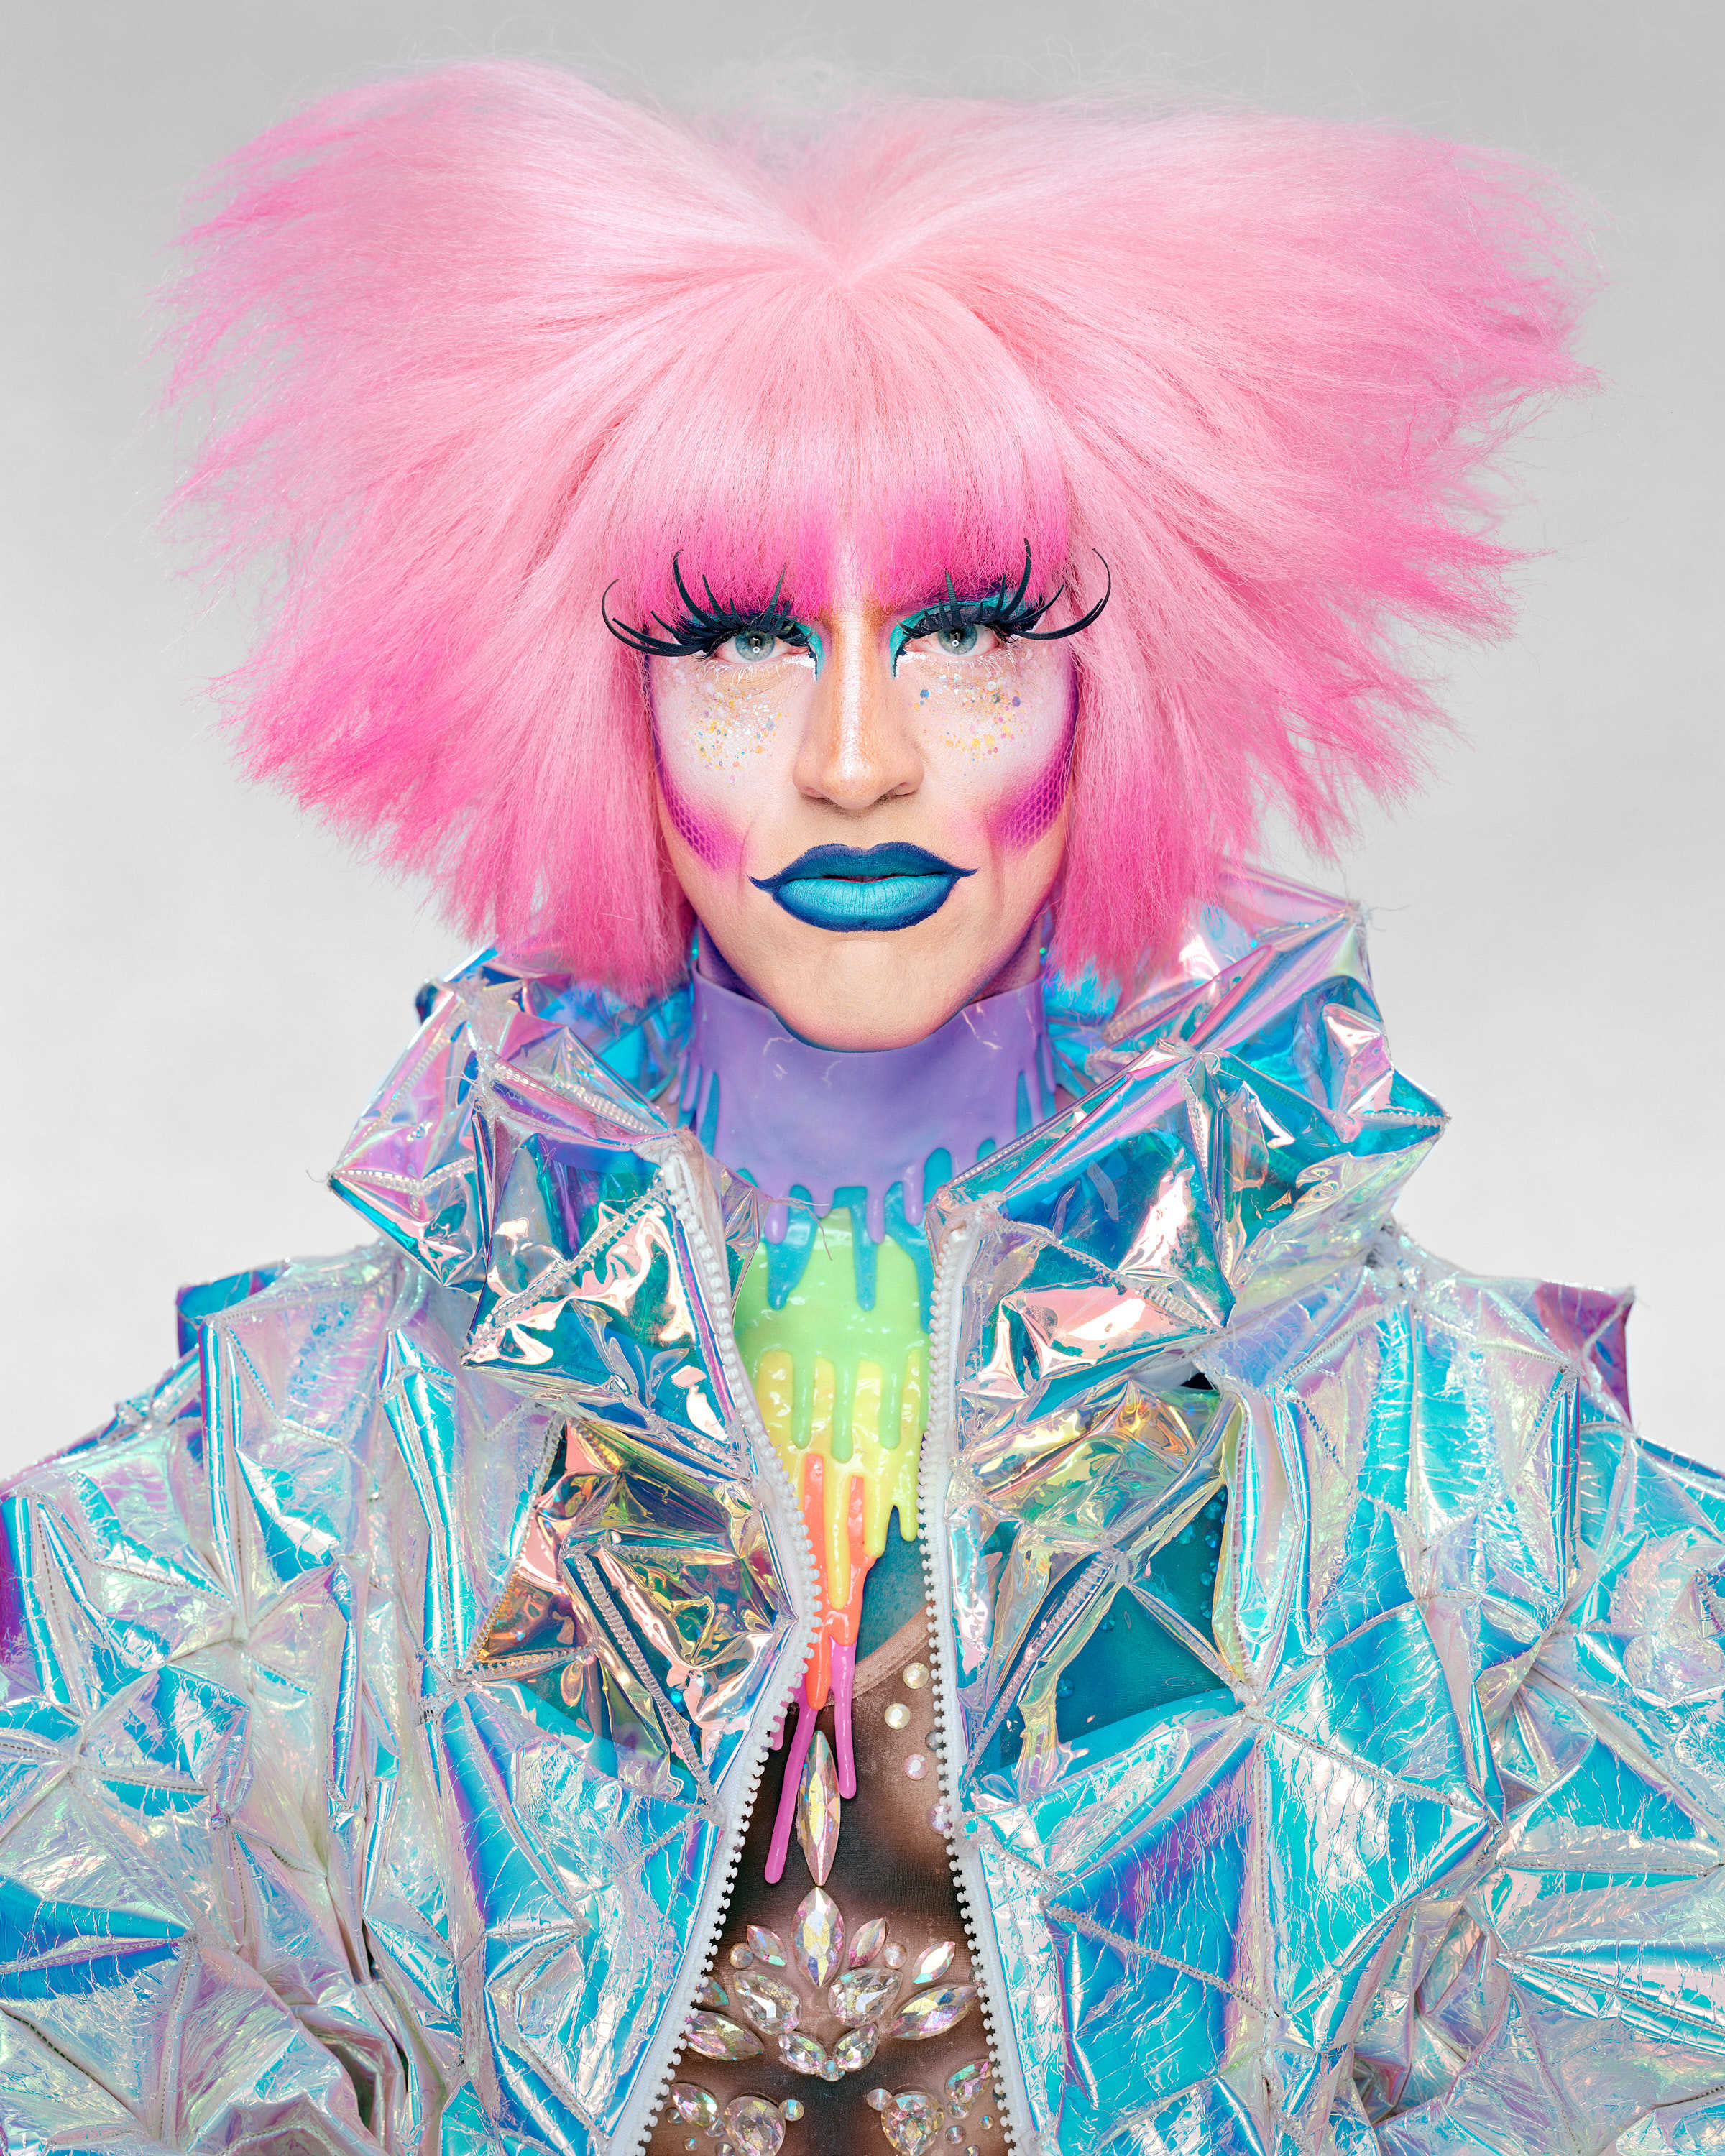 Martin Schoeller: Drag Queens: Acid Betty, 2019 © Martin Schoeller